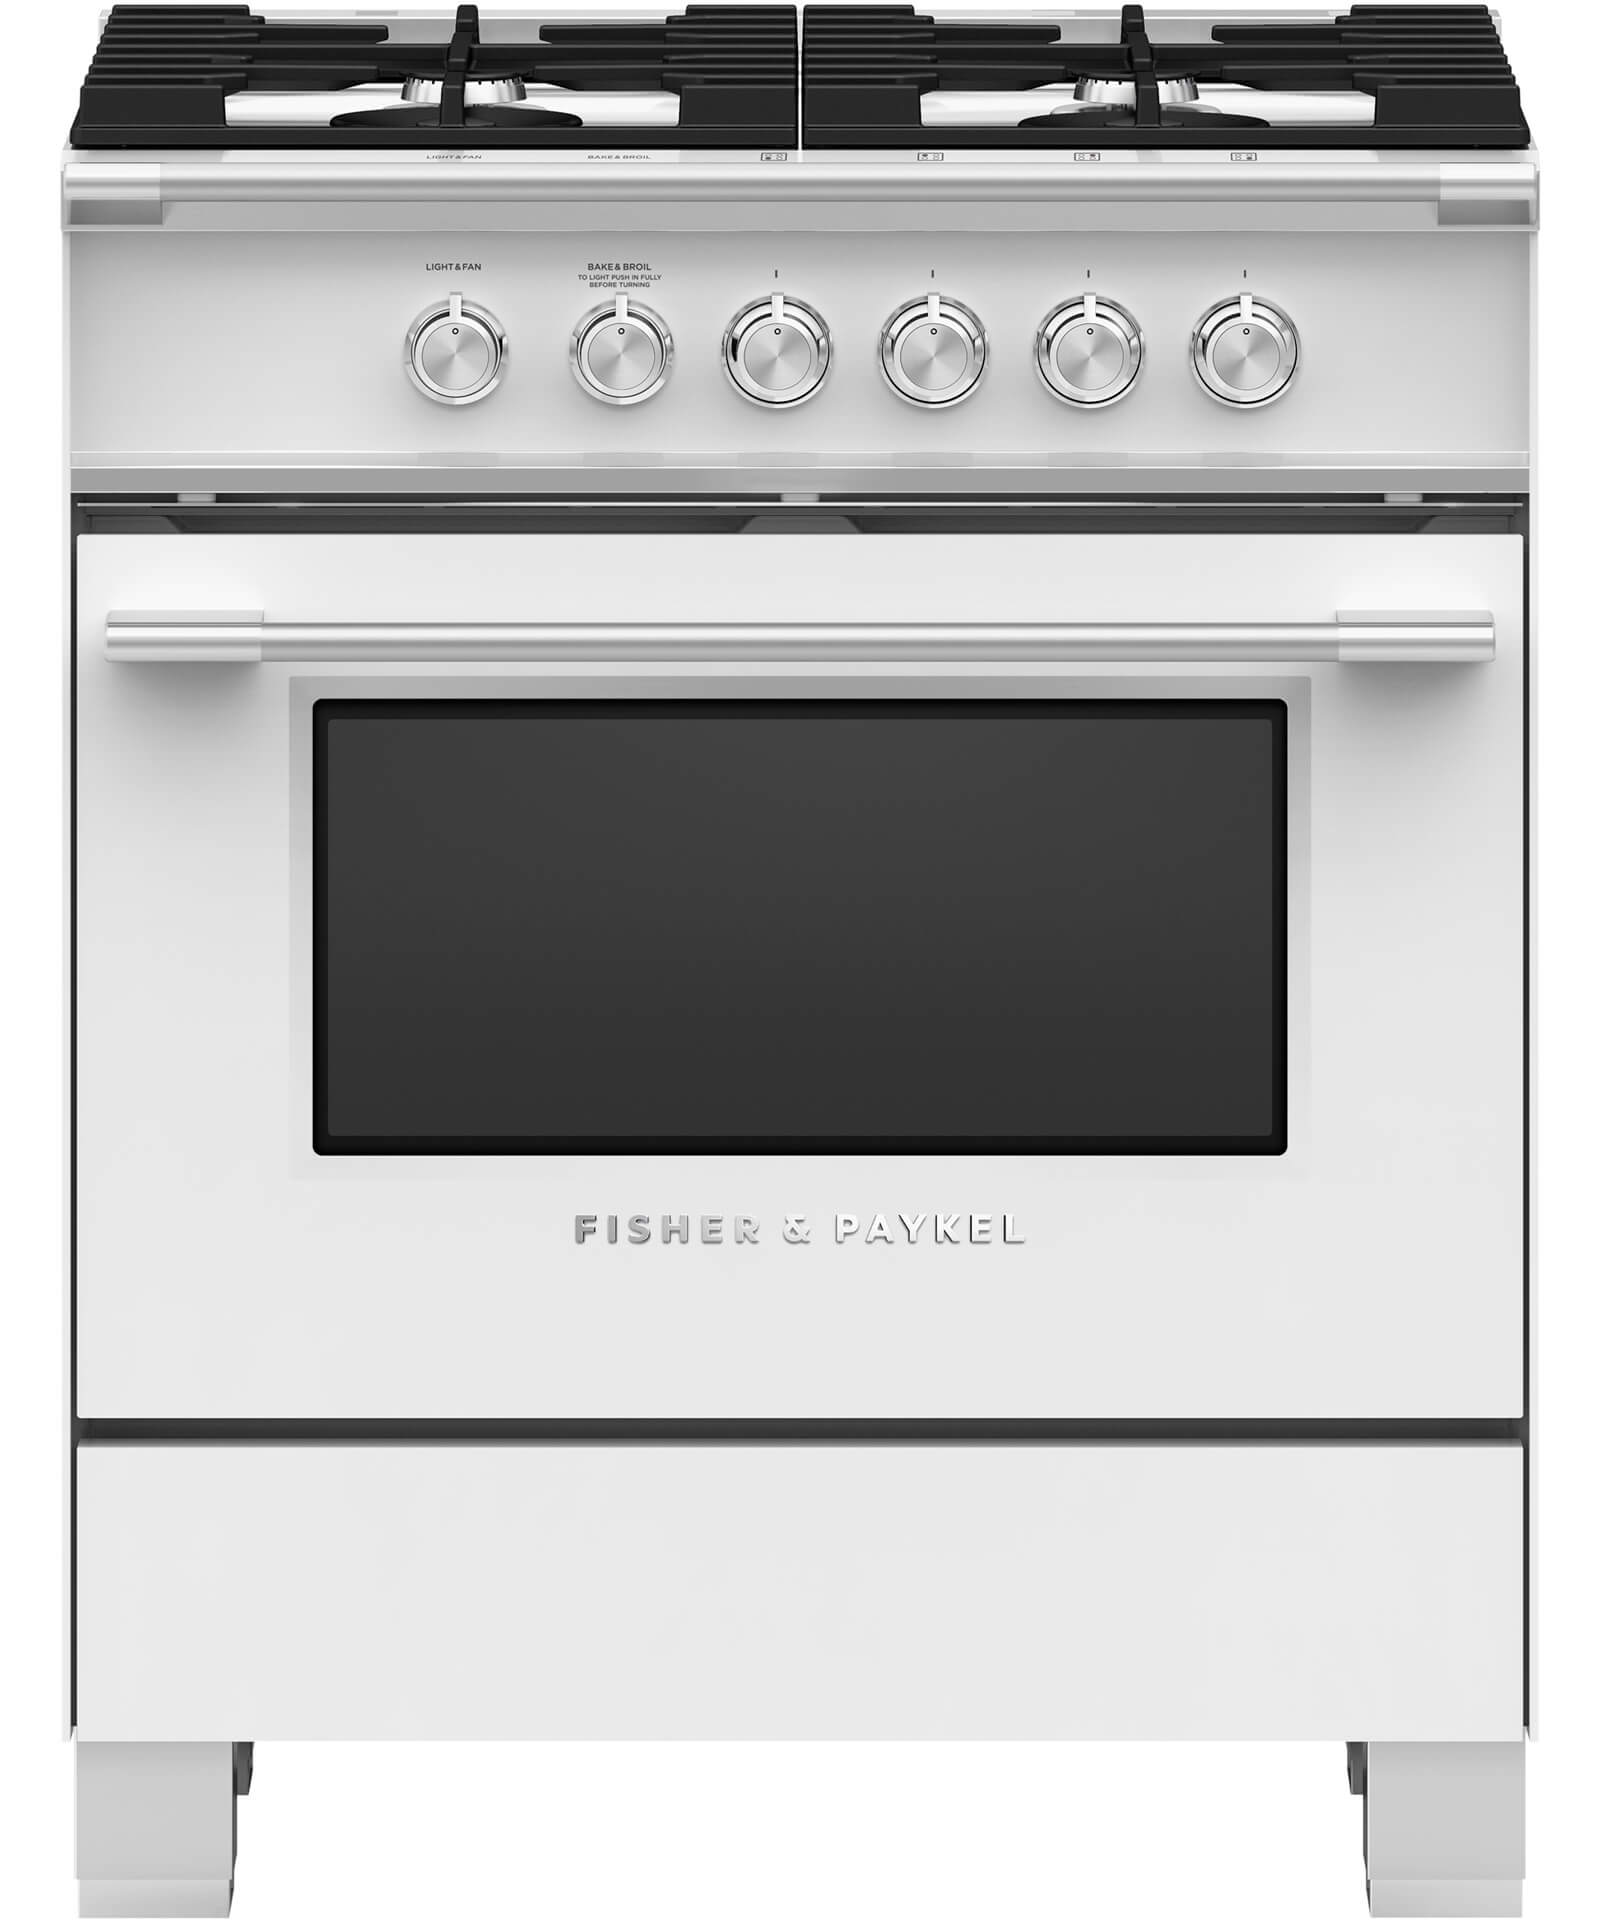 "OR30SCG4W1 - 30"" Gas Range - 81314"